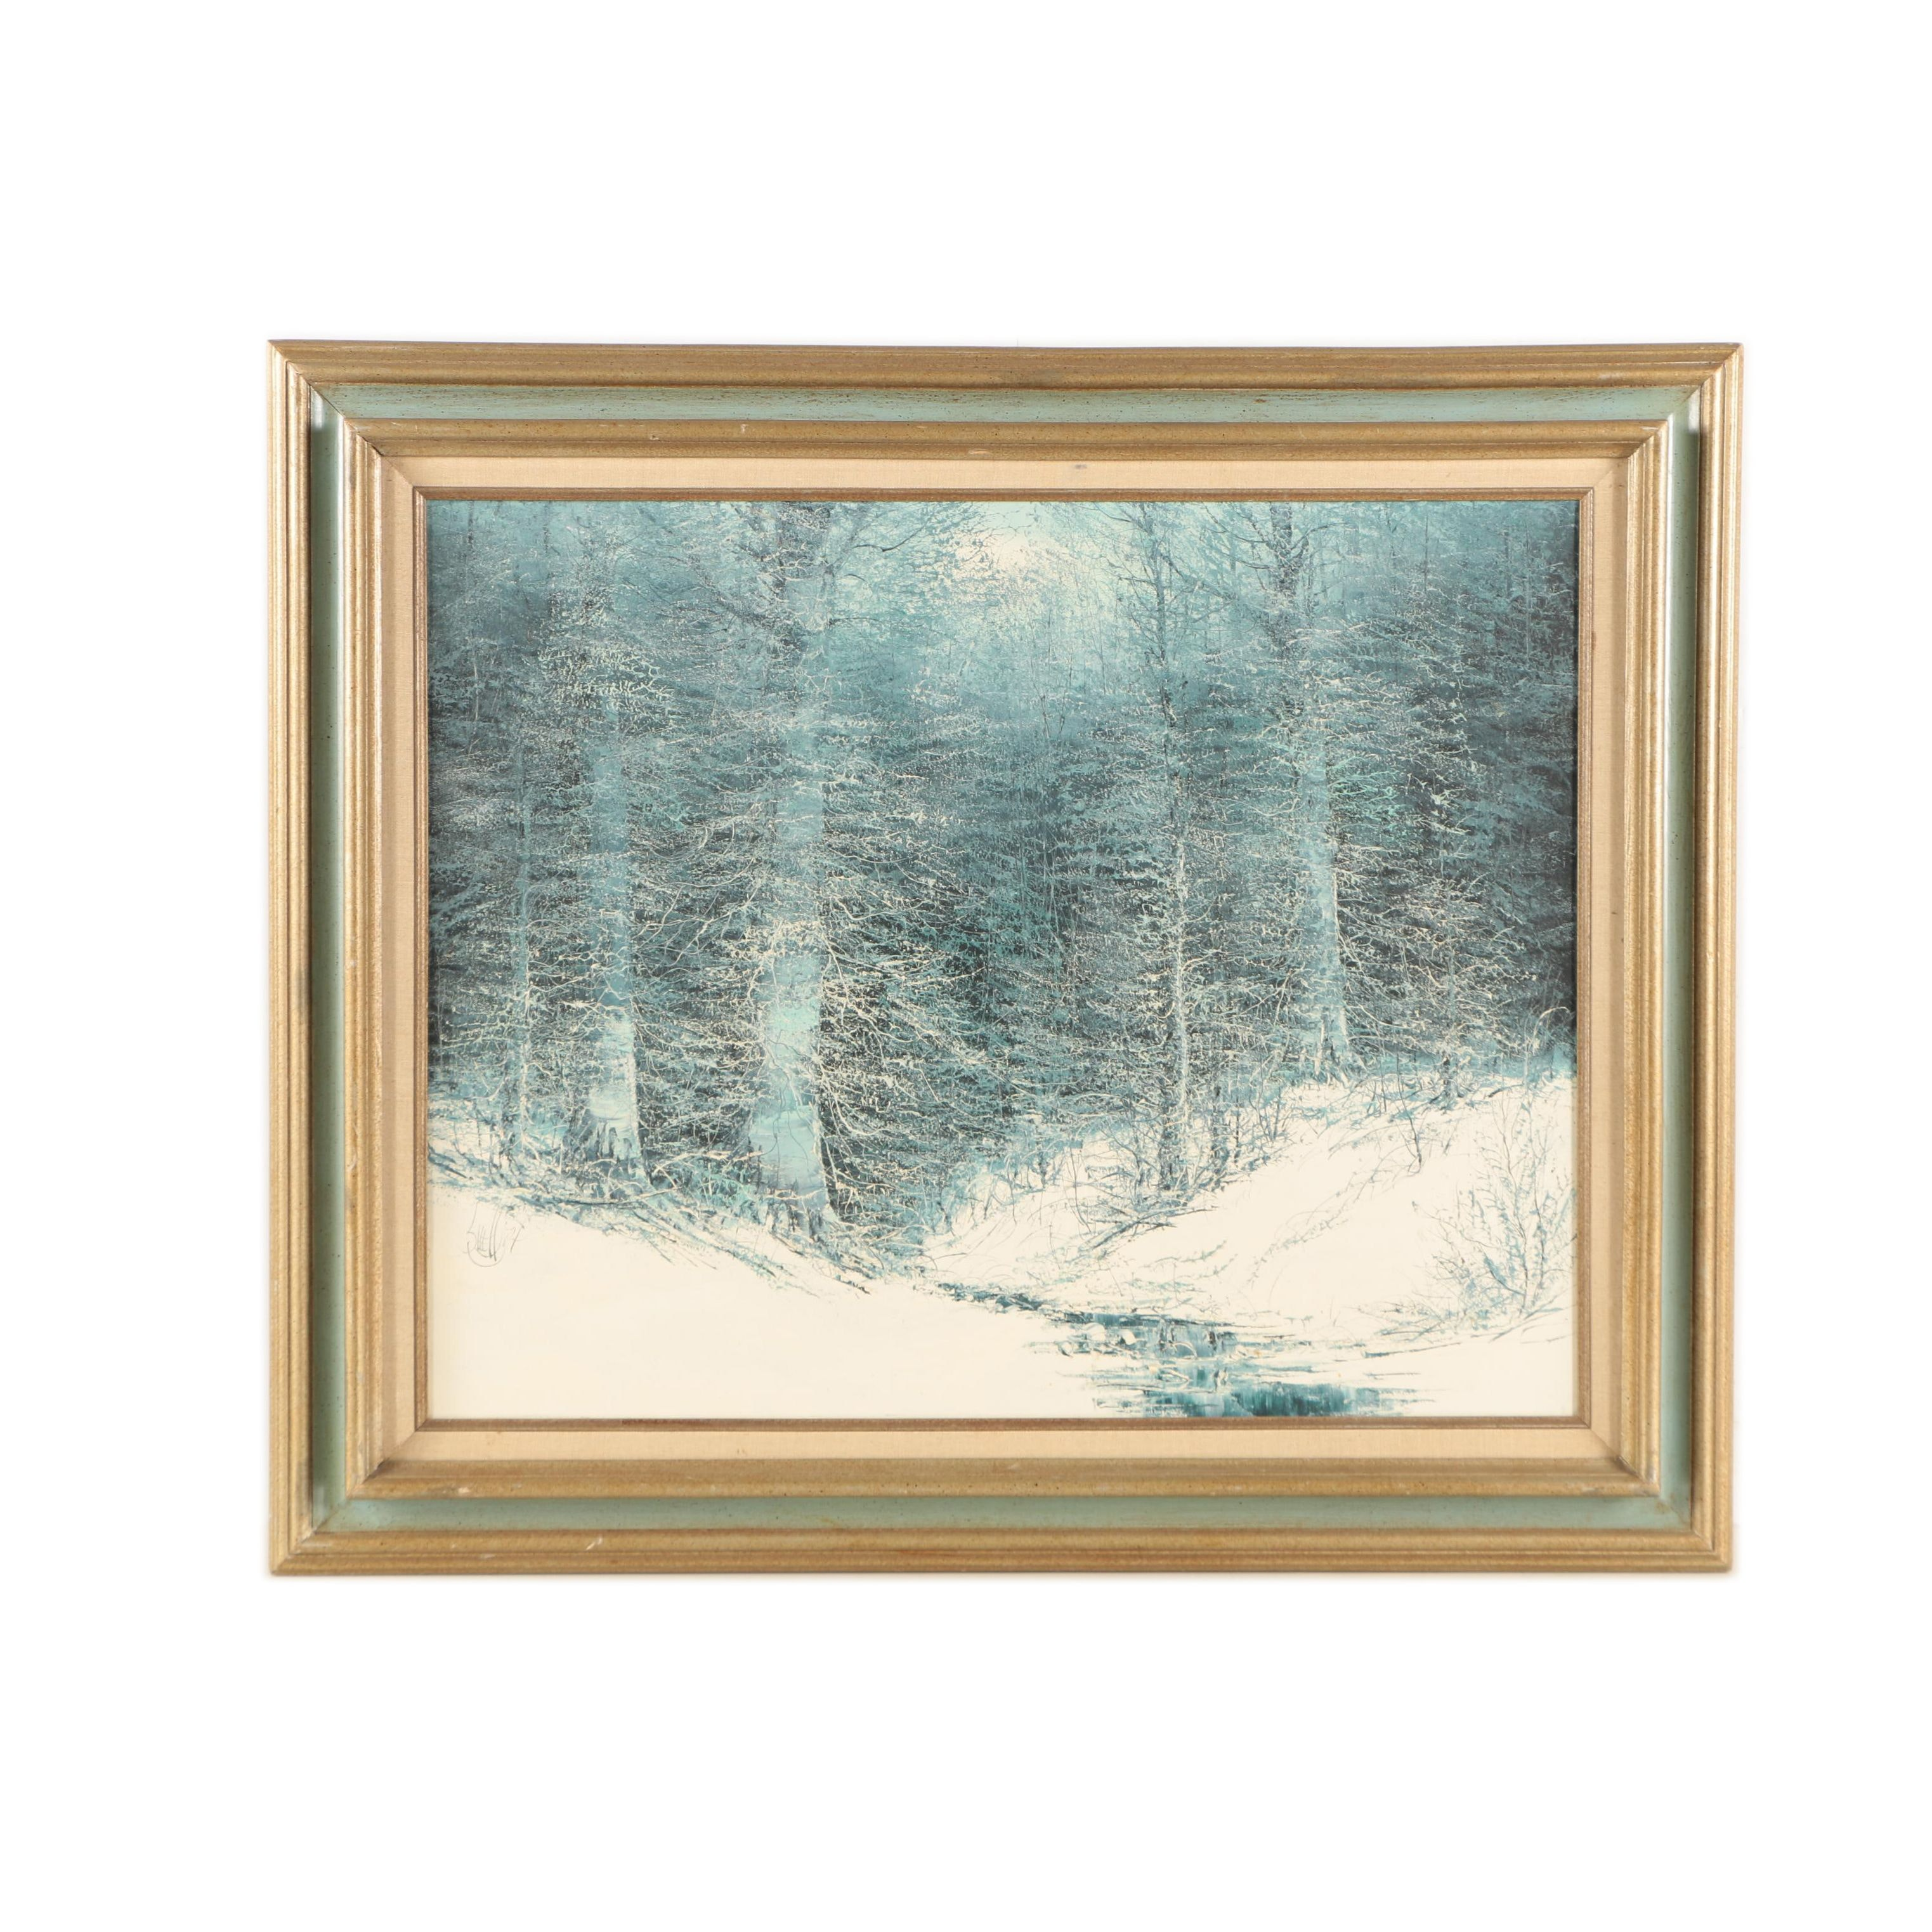 Joe Shell Oil Painting of a Snow-Covered Clearing